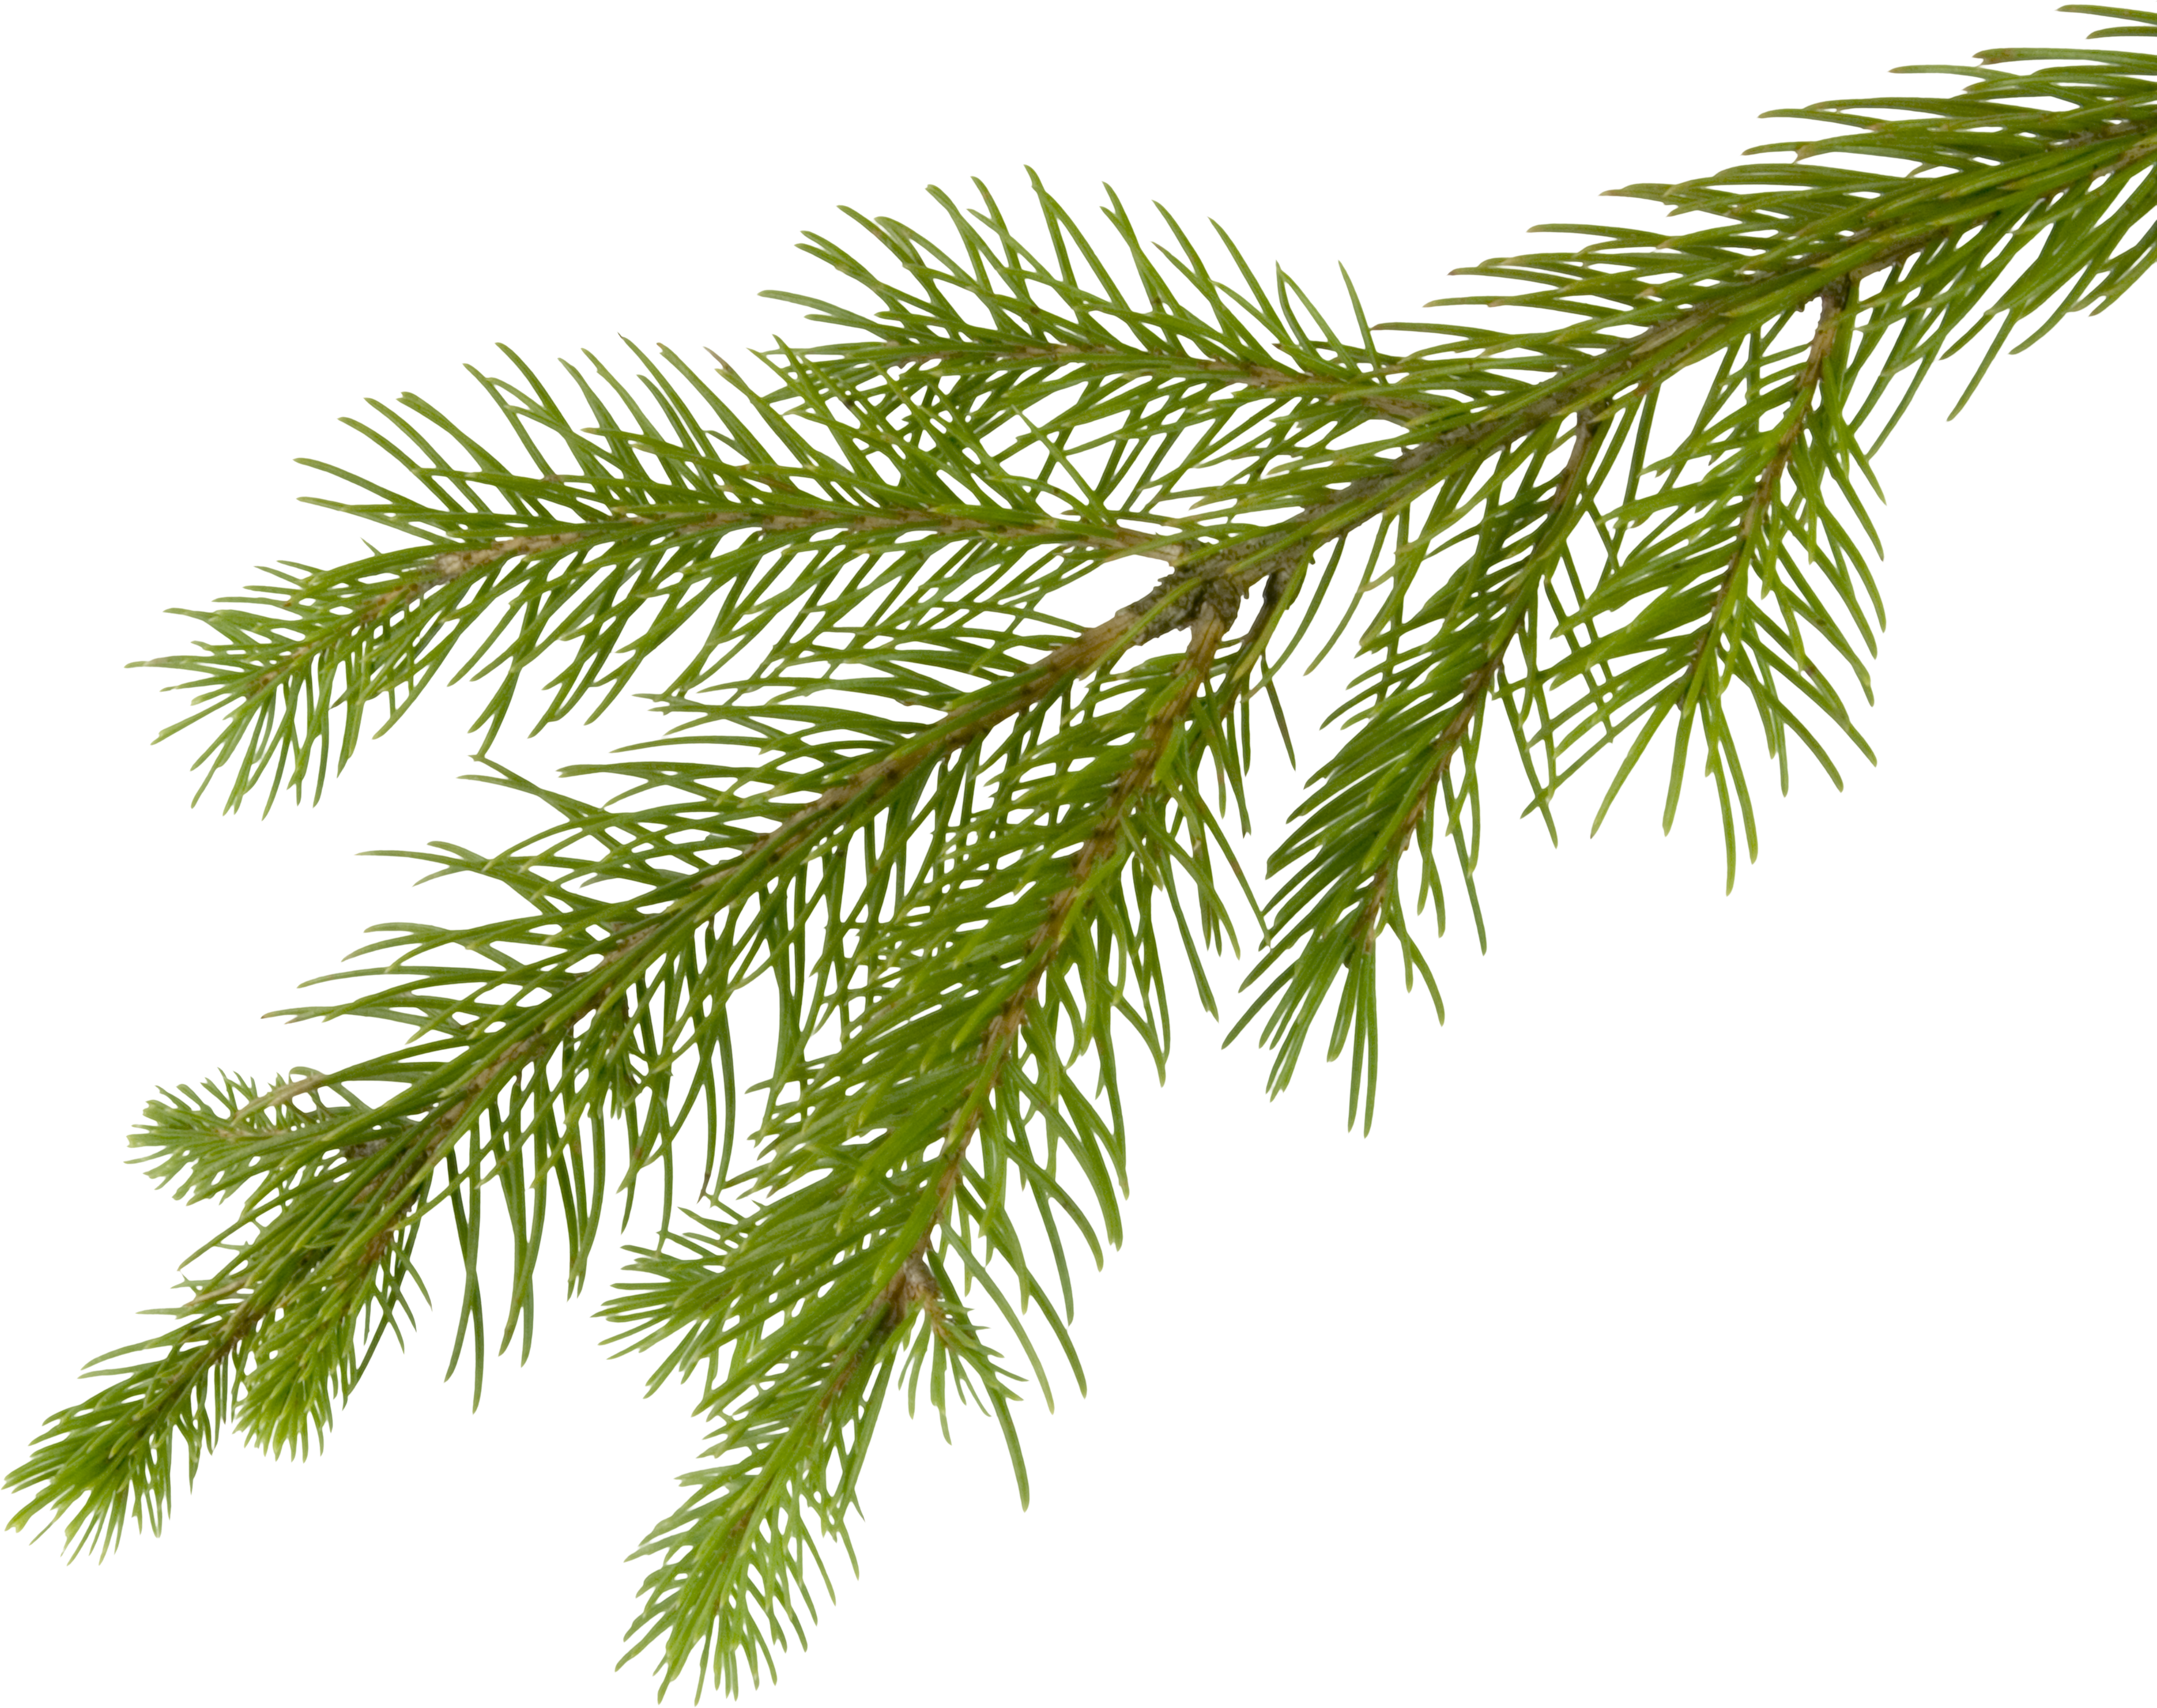 Christmas tree branch clipart svg transparent download Tree Branch Three | Isolated Stock Photo by noBACKS.com svg transparent download